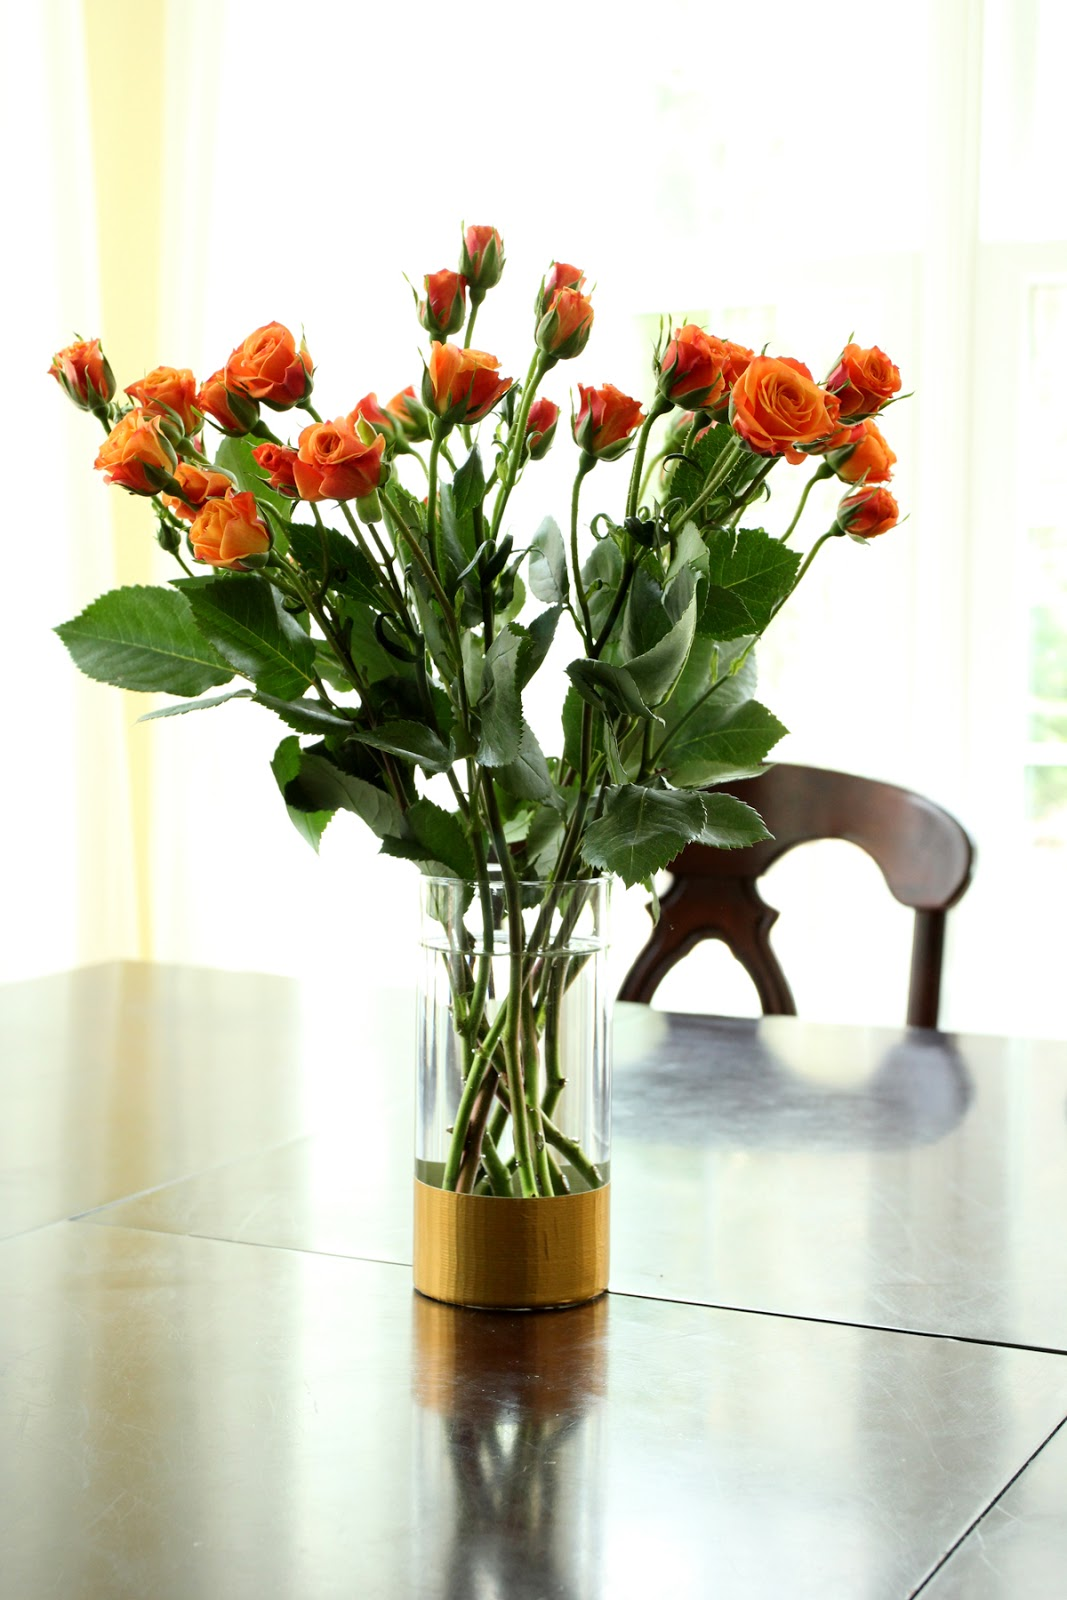 5 minute un dipped gold vase less than perfect life of bliss 5 minute un dipped gold vase reviewsmspy